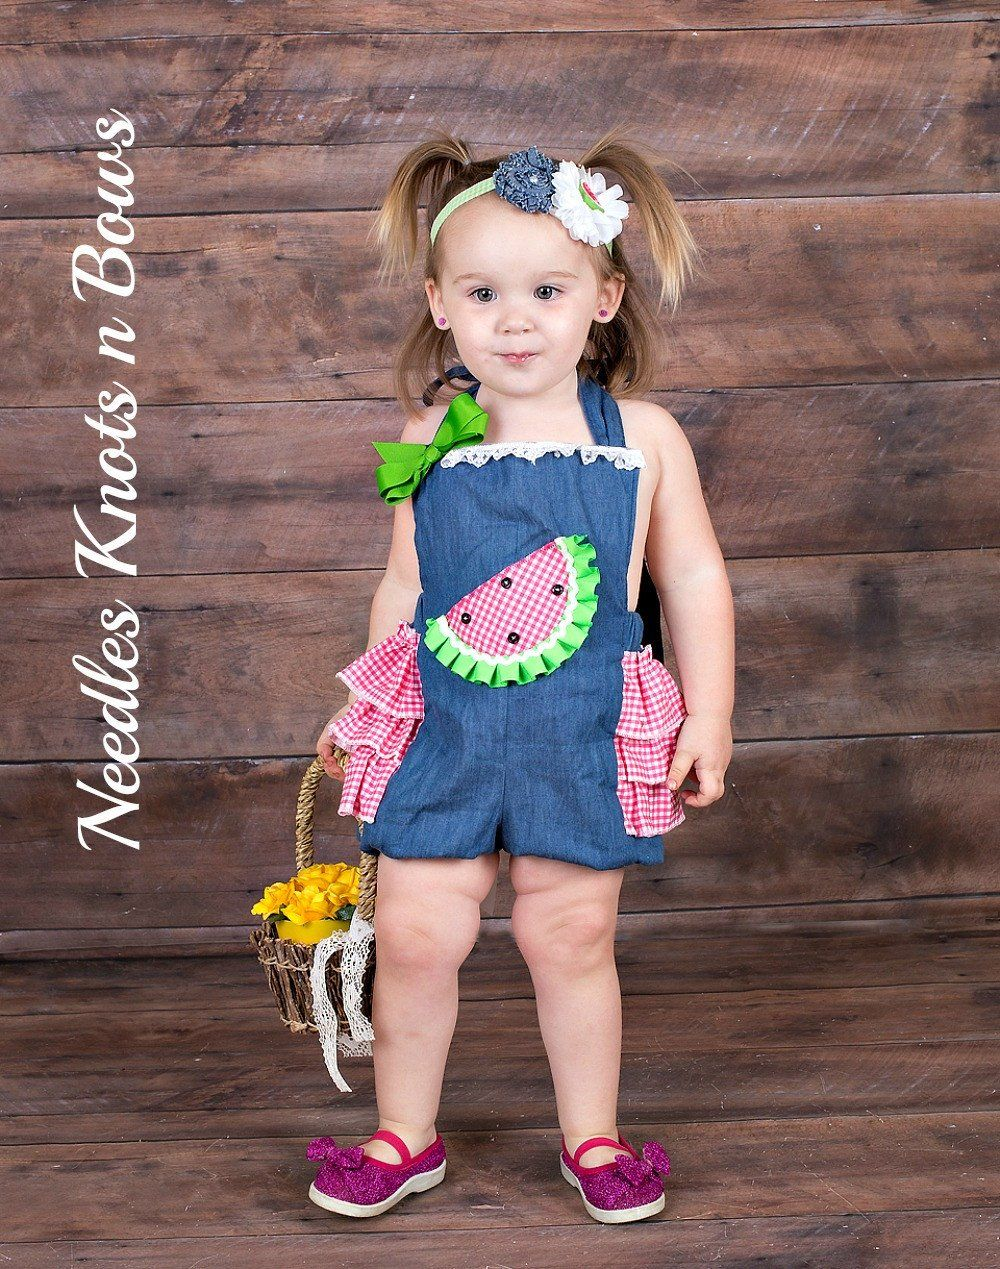 082e6052c090 If you are looking for an OOC Watermelon Pageant outfit or you are throwing  your baby girl a Watermelon themed Birthday Party and need a darling  Watermelon ...